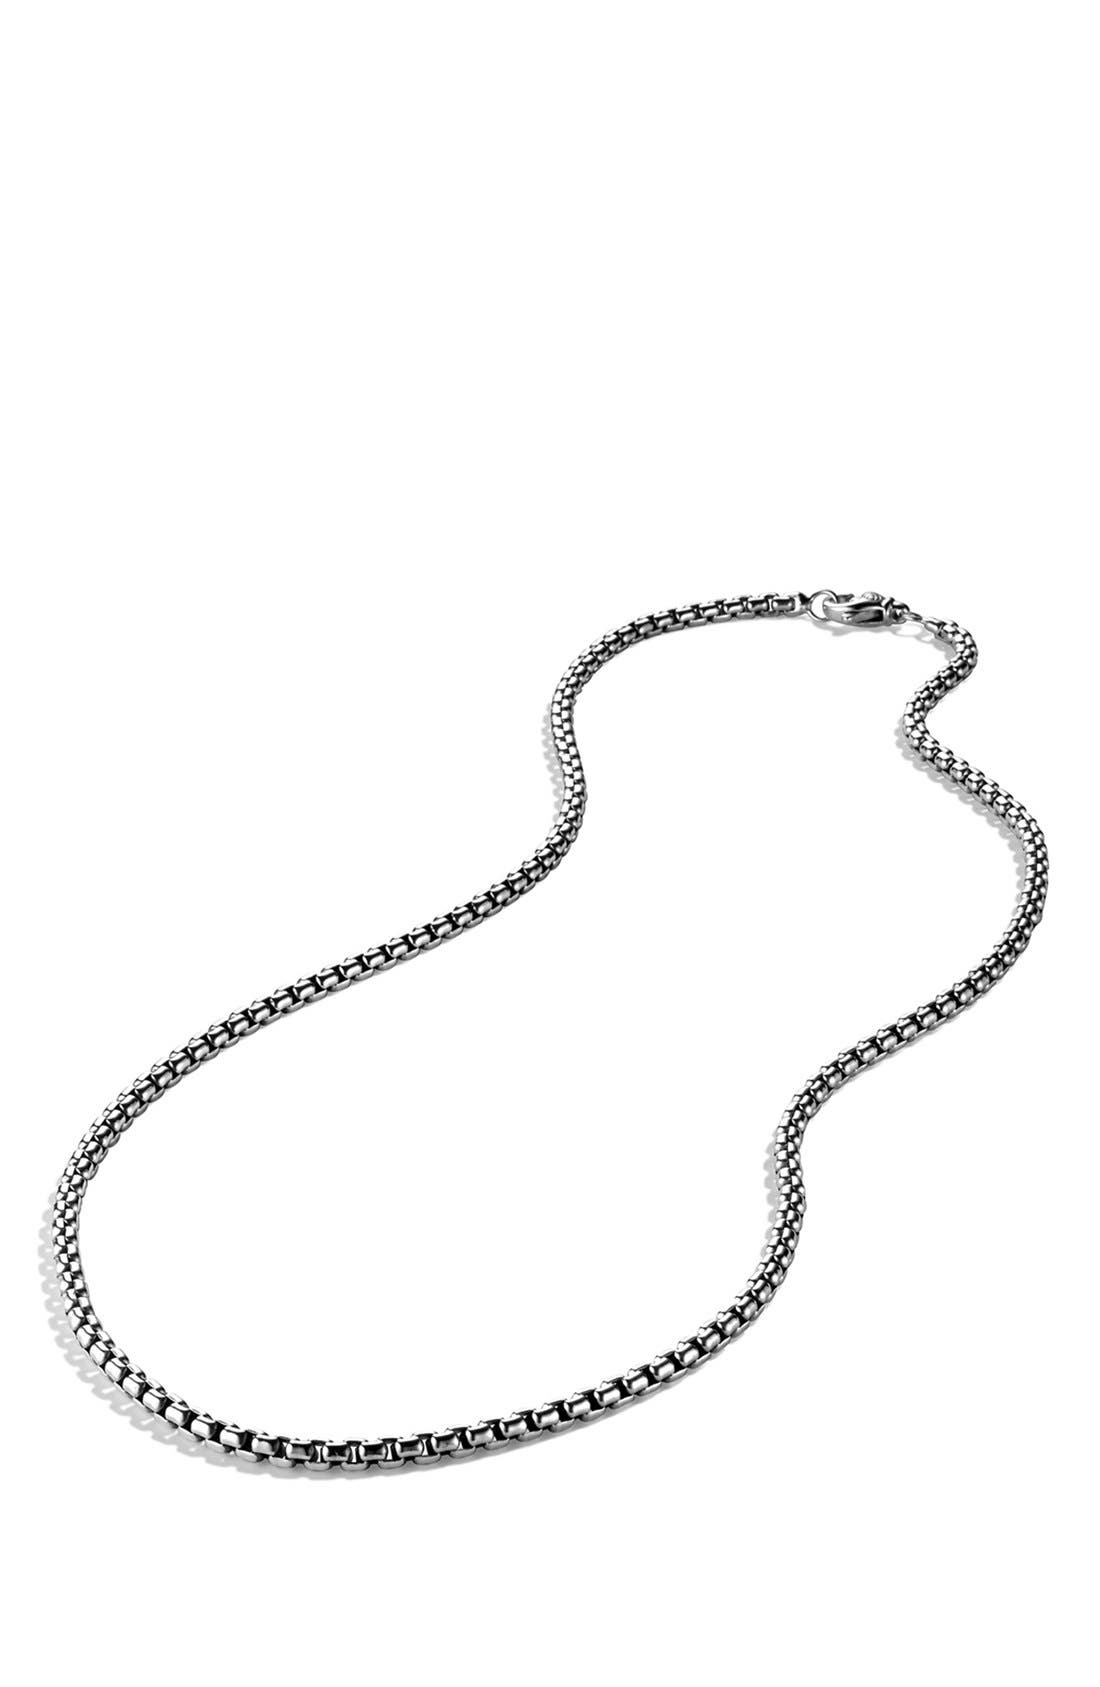 'Chain' Medium Box Chain Necklace,                             Alternate thumbnail 2, color,                             SILVER